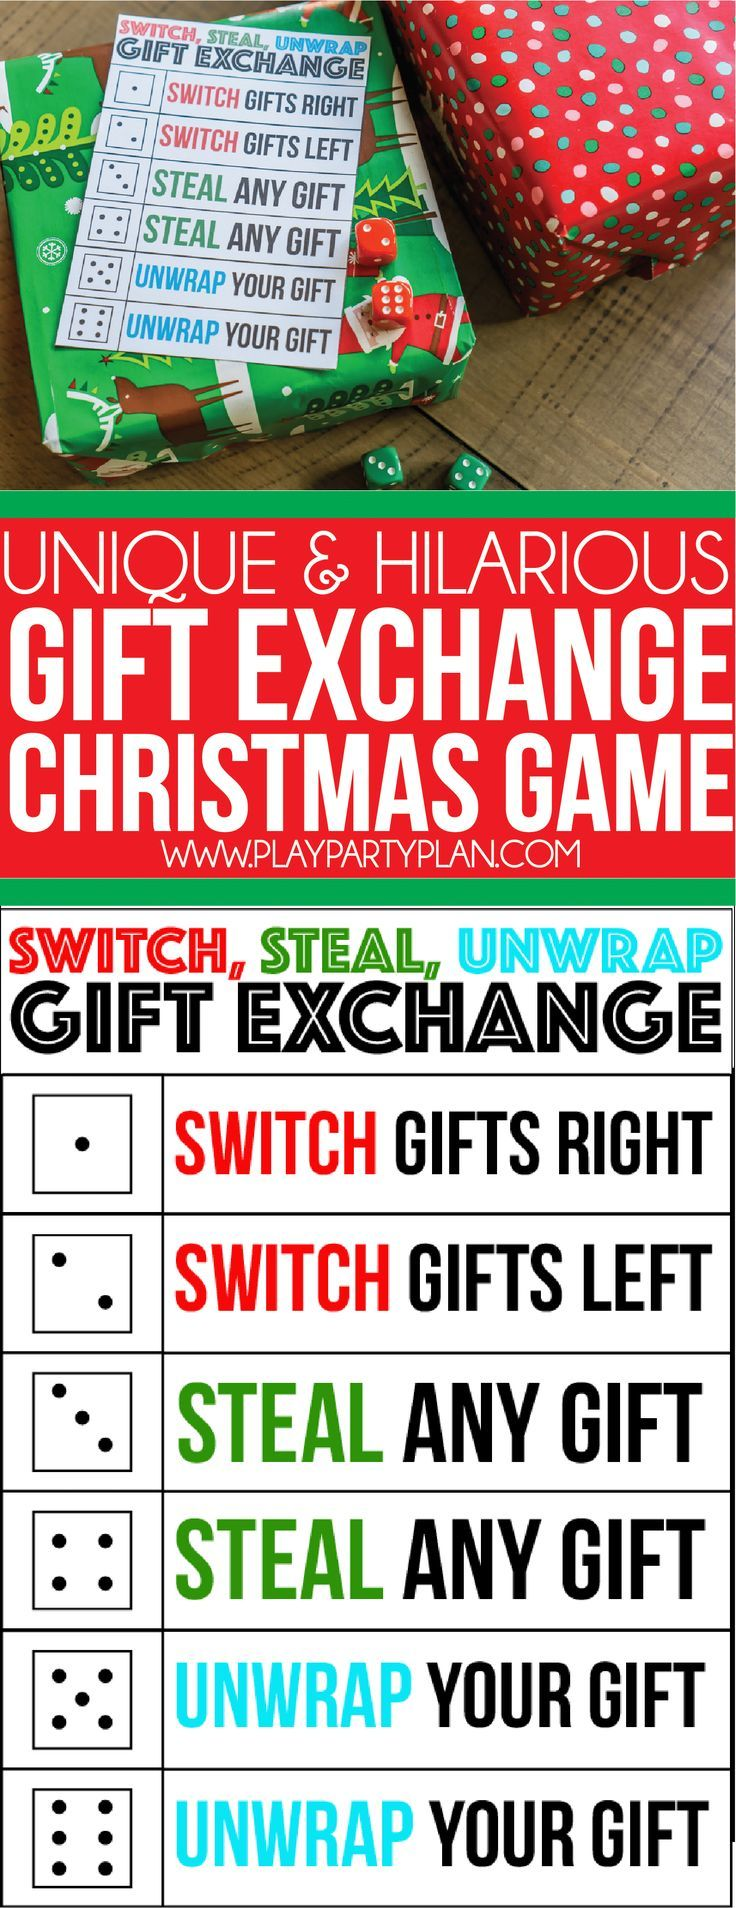 A perfect gift exchange game for kids, for adults, and even for teens! Simply roll the dice and see where the gifts end up. Definitely one of our favorite Christmas party games ever and it'll quickly become a family or office favorite for you too!  via @playpartyplan